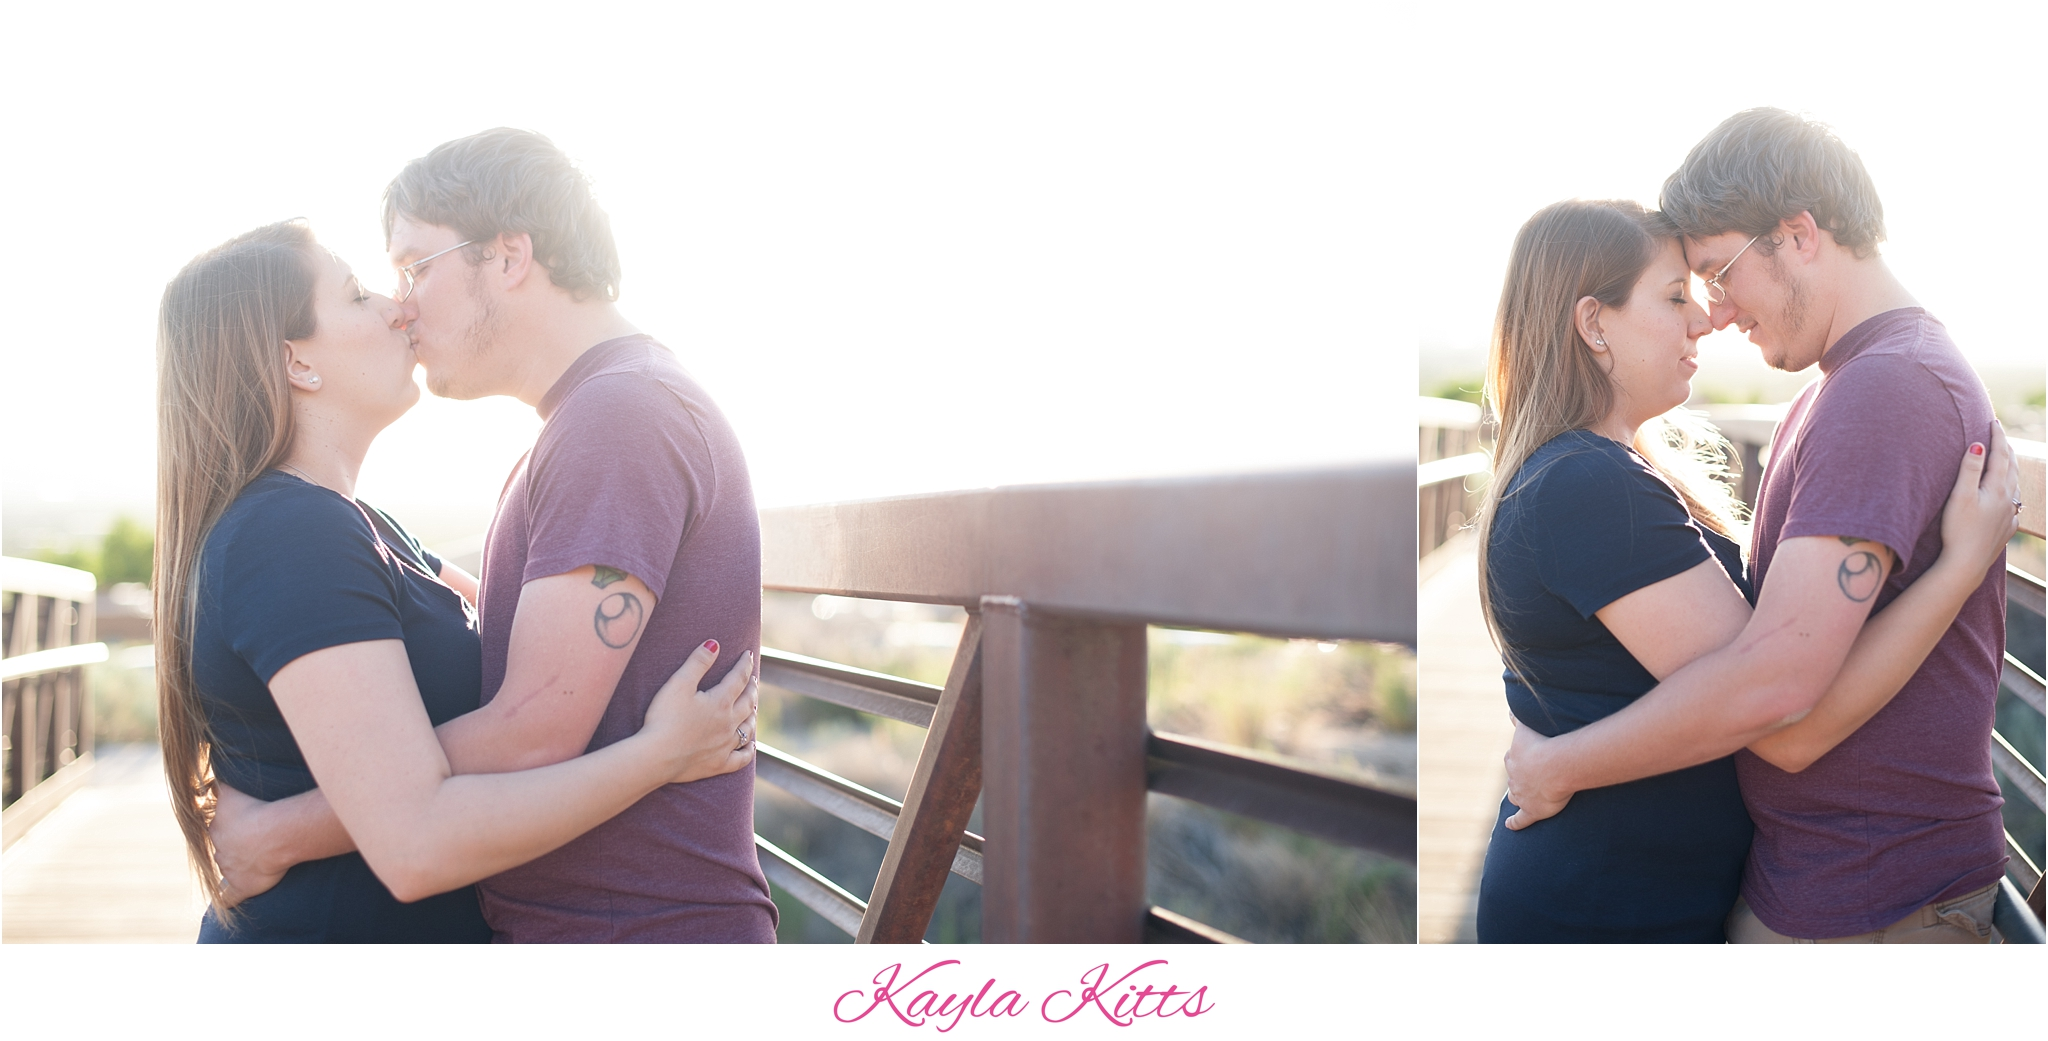 kayla kitts photography - albuquerque wedding photographer - los poblanos - los poblanos wedding - albuquerque venue - casa de suenos - hotel albuquerque wedding - new mexico wedding photographer_0036.jpg